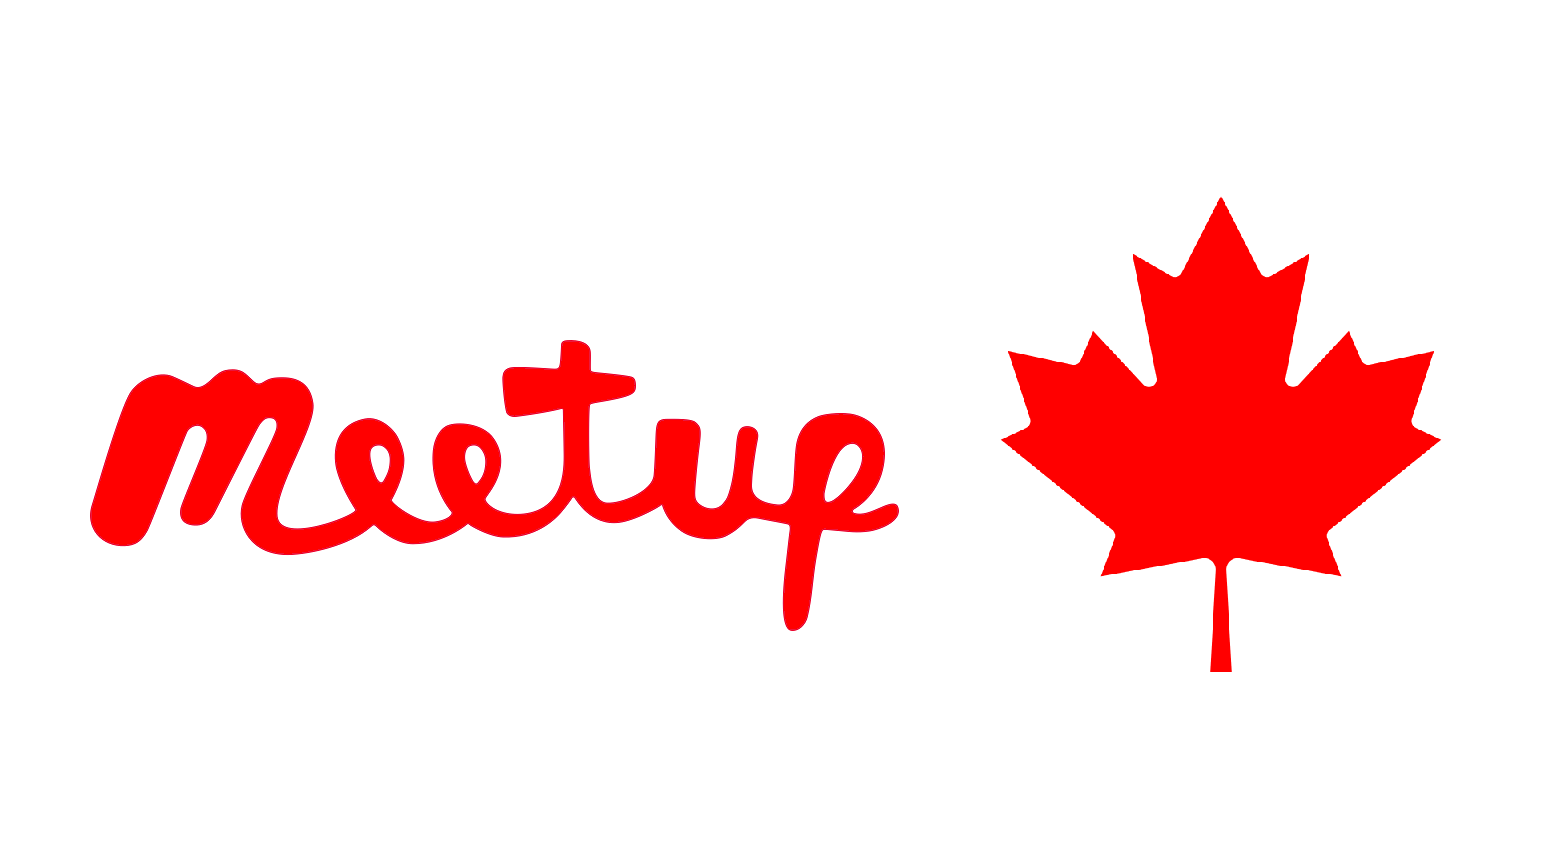 The London Expat Canadian Meetup Group